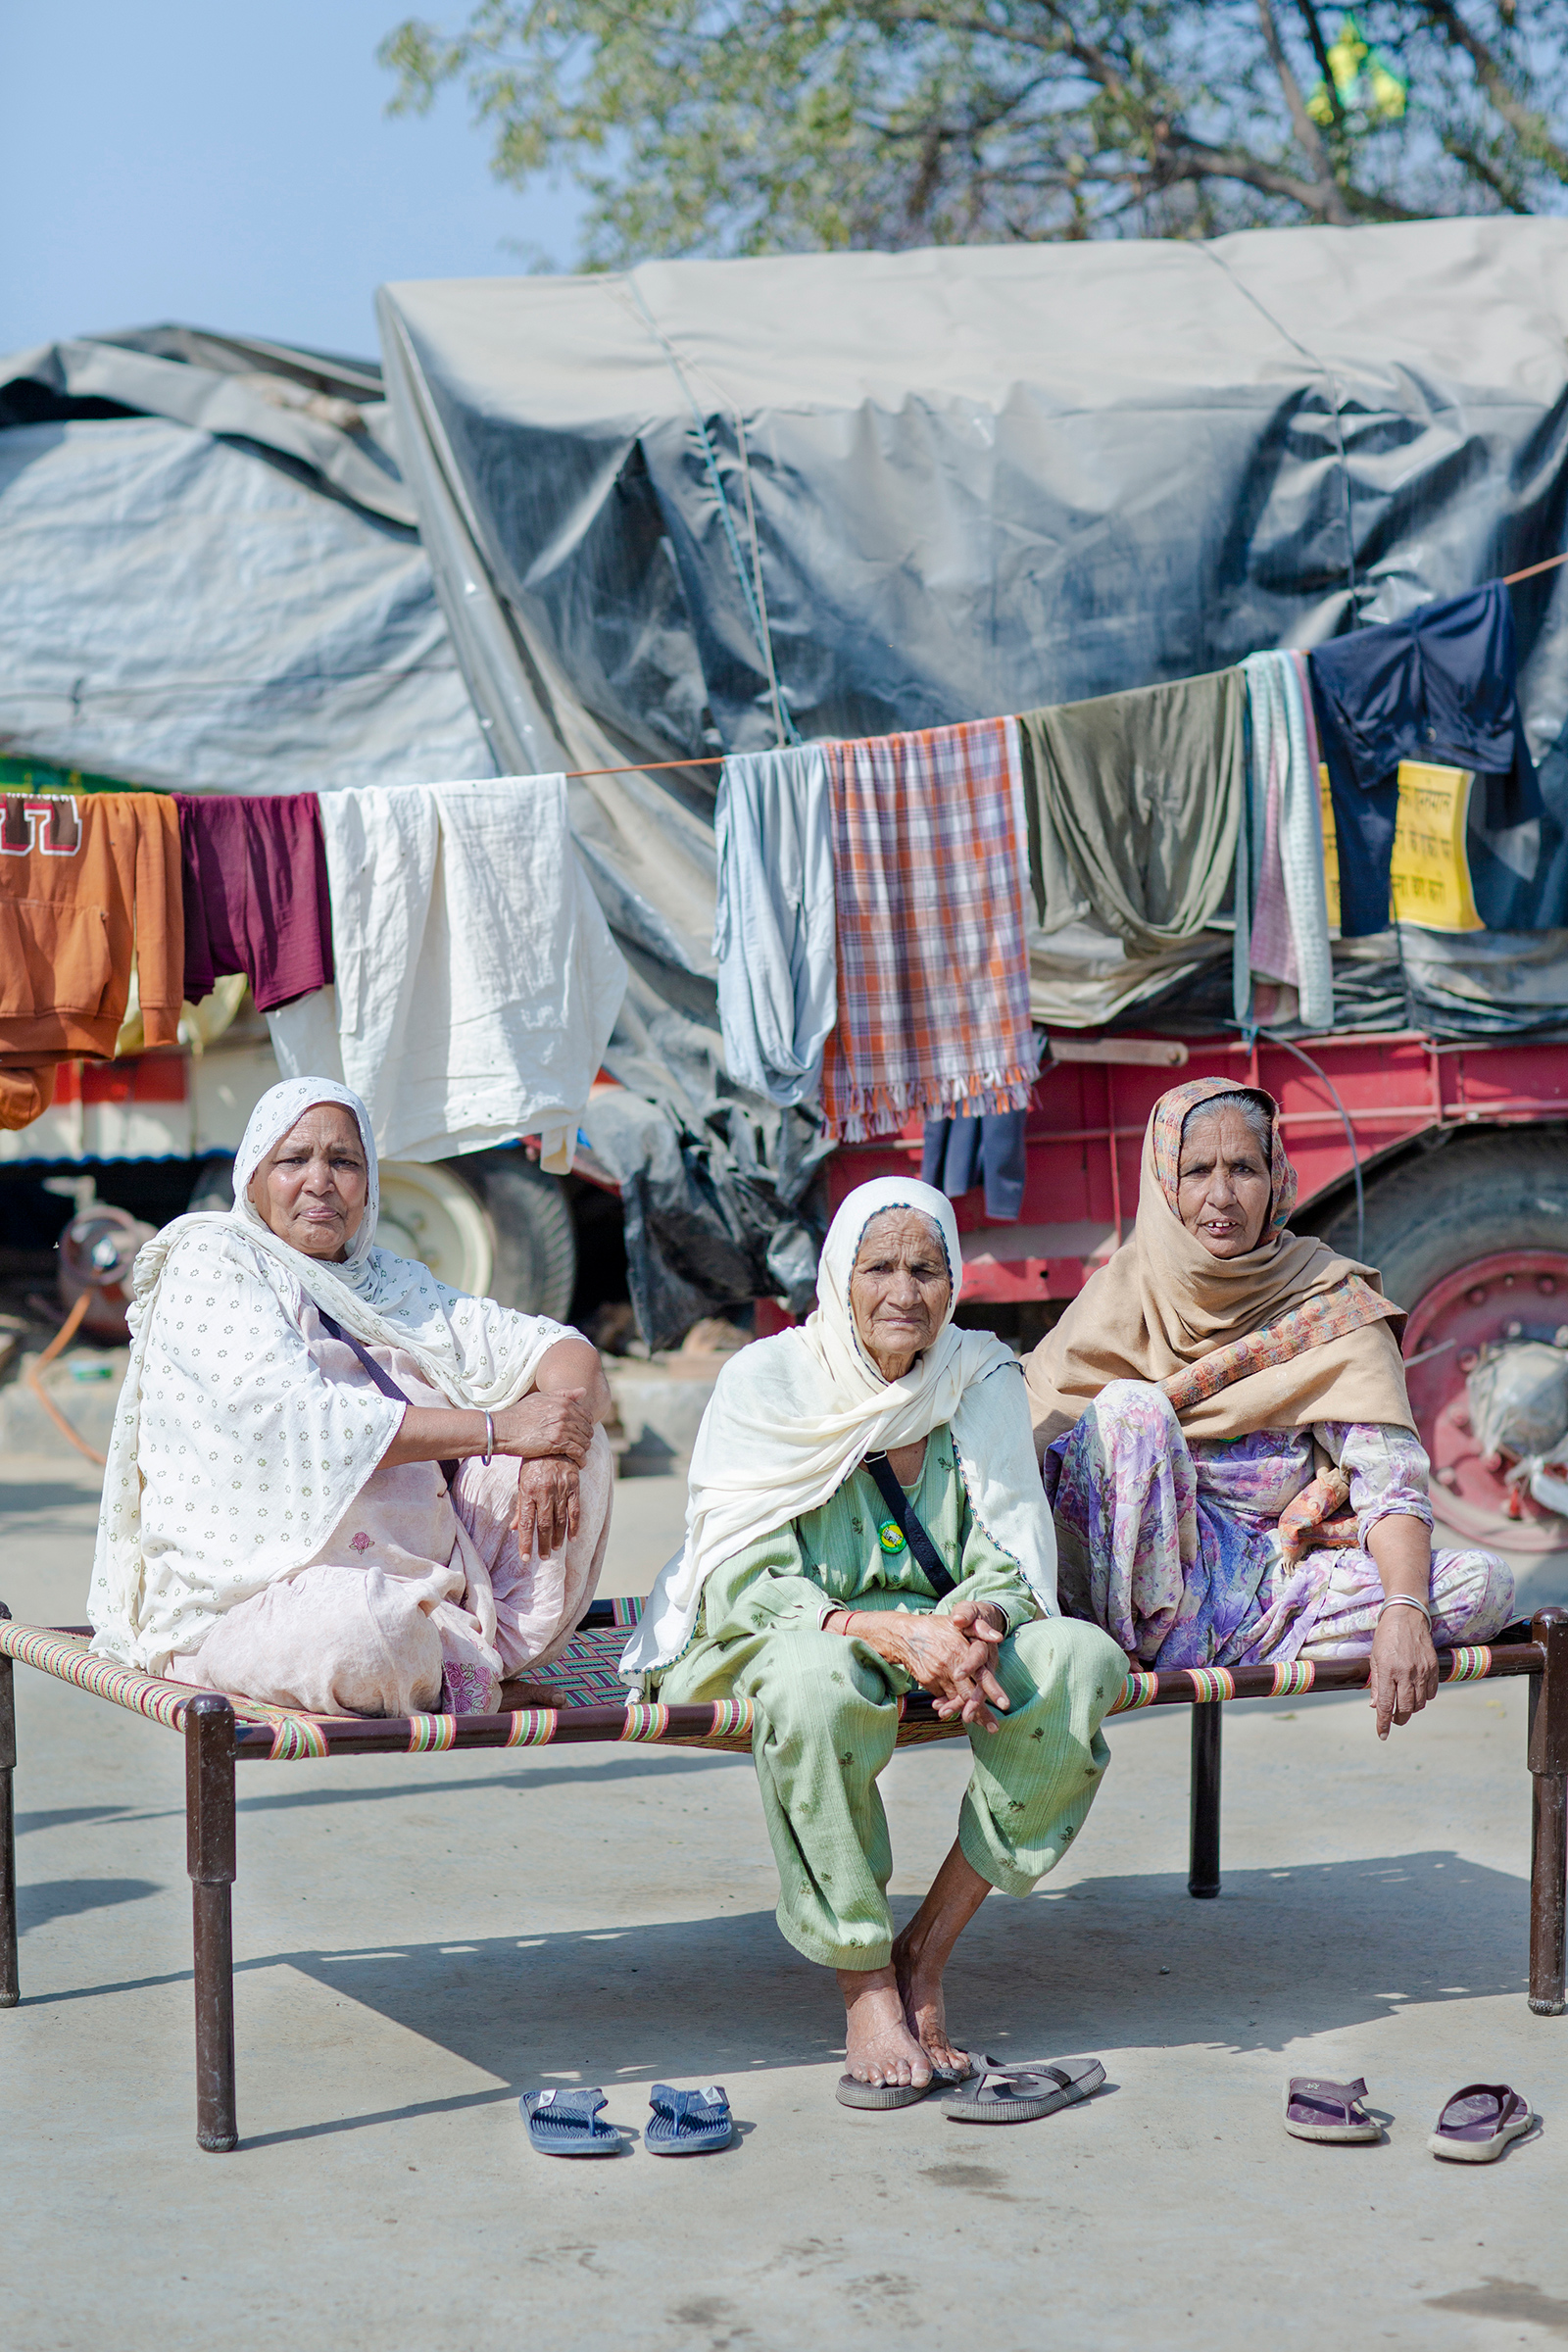 """The protests have drawn women of all ages. While some speak onstage, others are simply determined to be present. """"I am an illiterate woman,"""" says Gurmer Kaur, center, at the protests with her friends Surjit Kaur, left, and Jaswant Kaur, right, all in their mid-70s. """"I cannot talk well, but I can sit tight—and I will sit here till the next elections if these laws are not called off."""""""